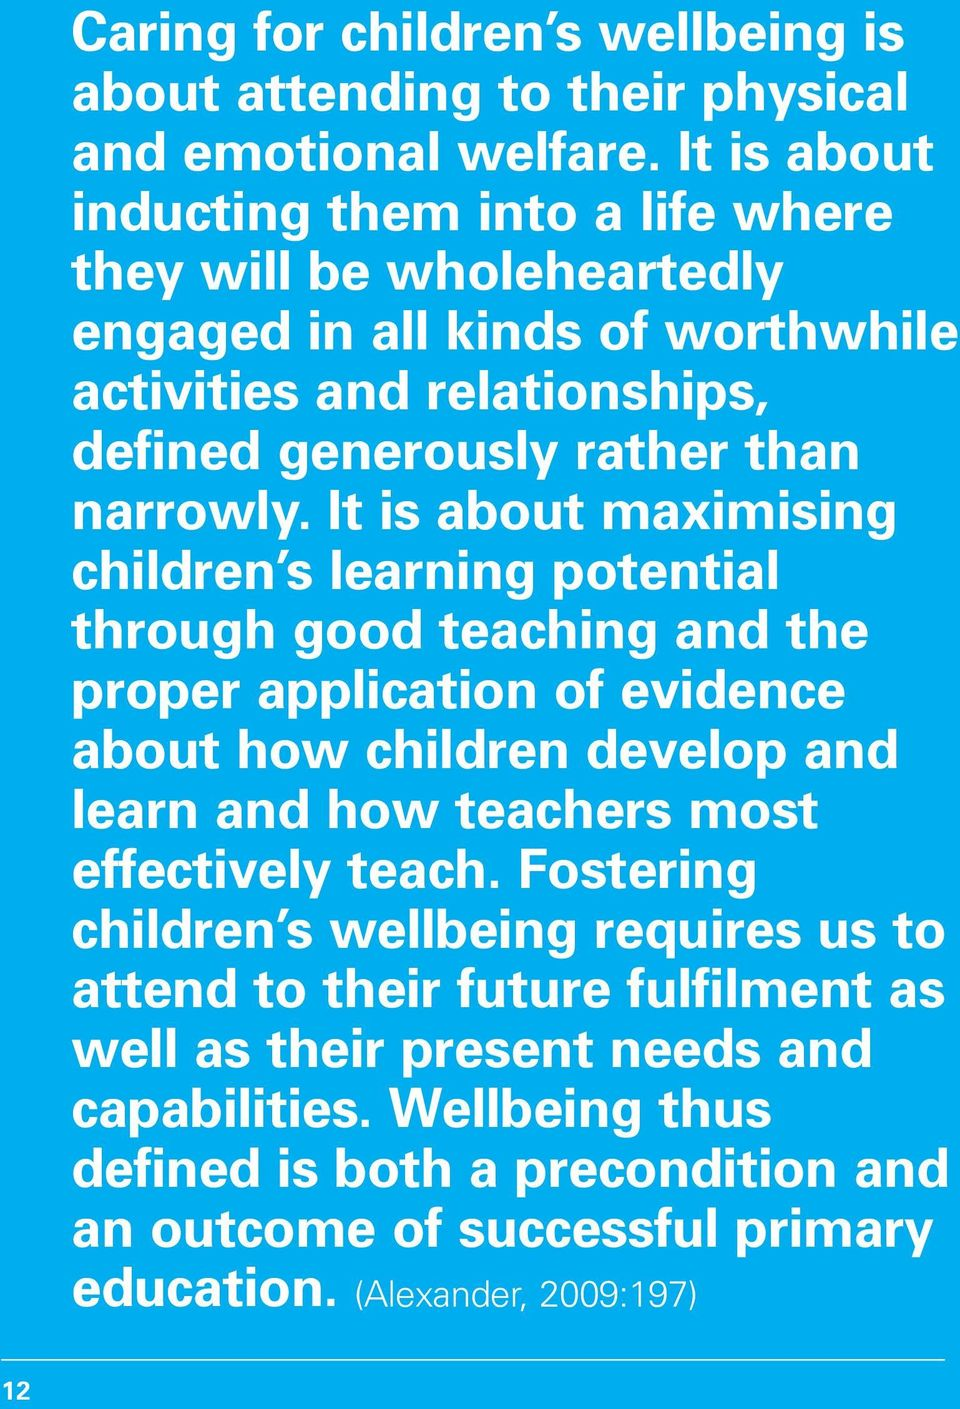 It is about maximising children s learning potential through good teaching and the proper application of evidence about how children develop and learn and how teachers most